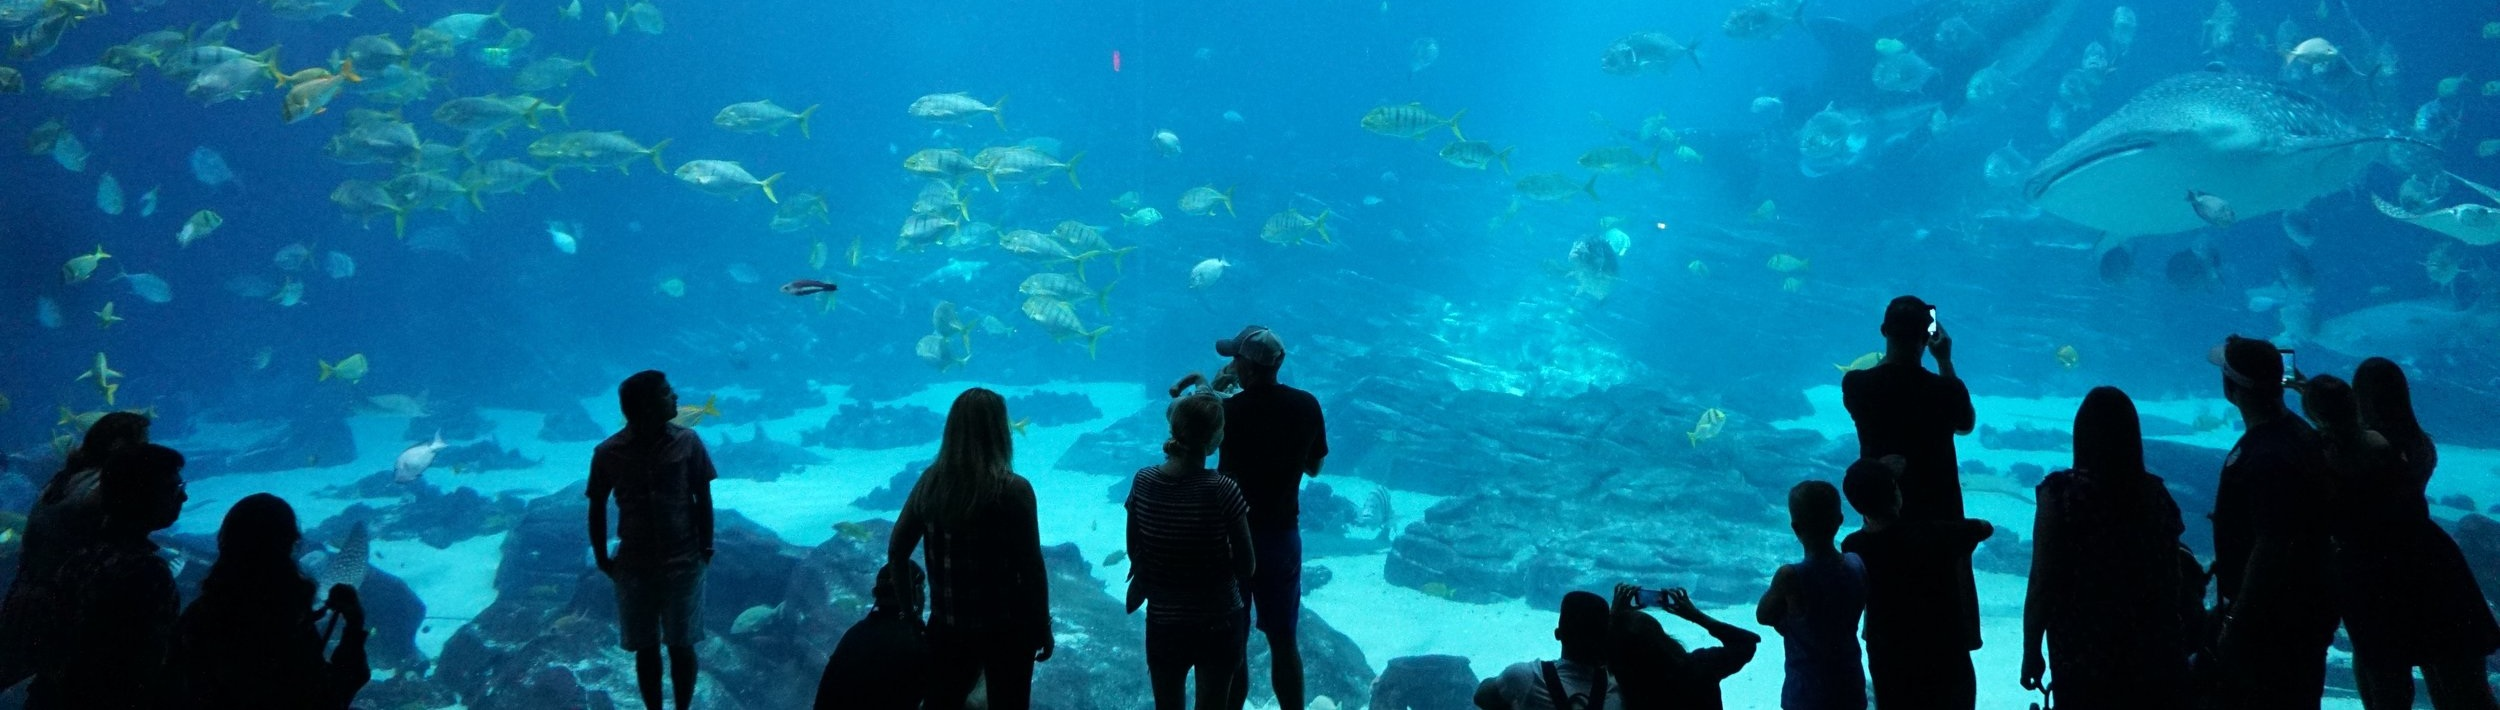 Groups of people looking up close at a glass aquarium window filled with fish. Photo by  Glenn Haertlein  on  Unsplash